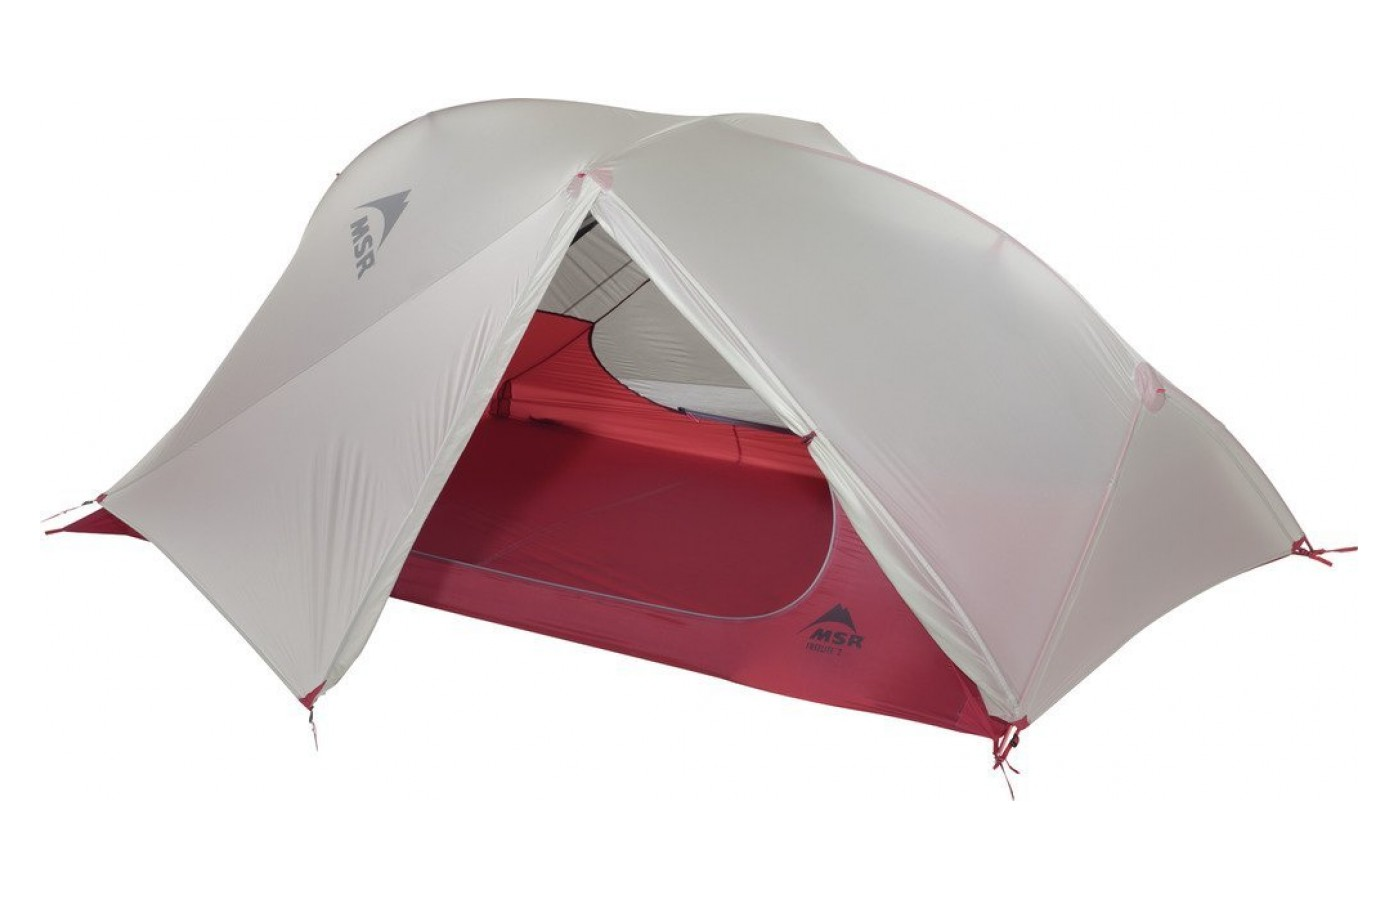 This tent is made out of lightweight materials.